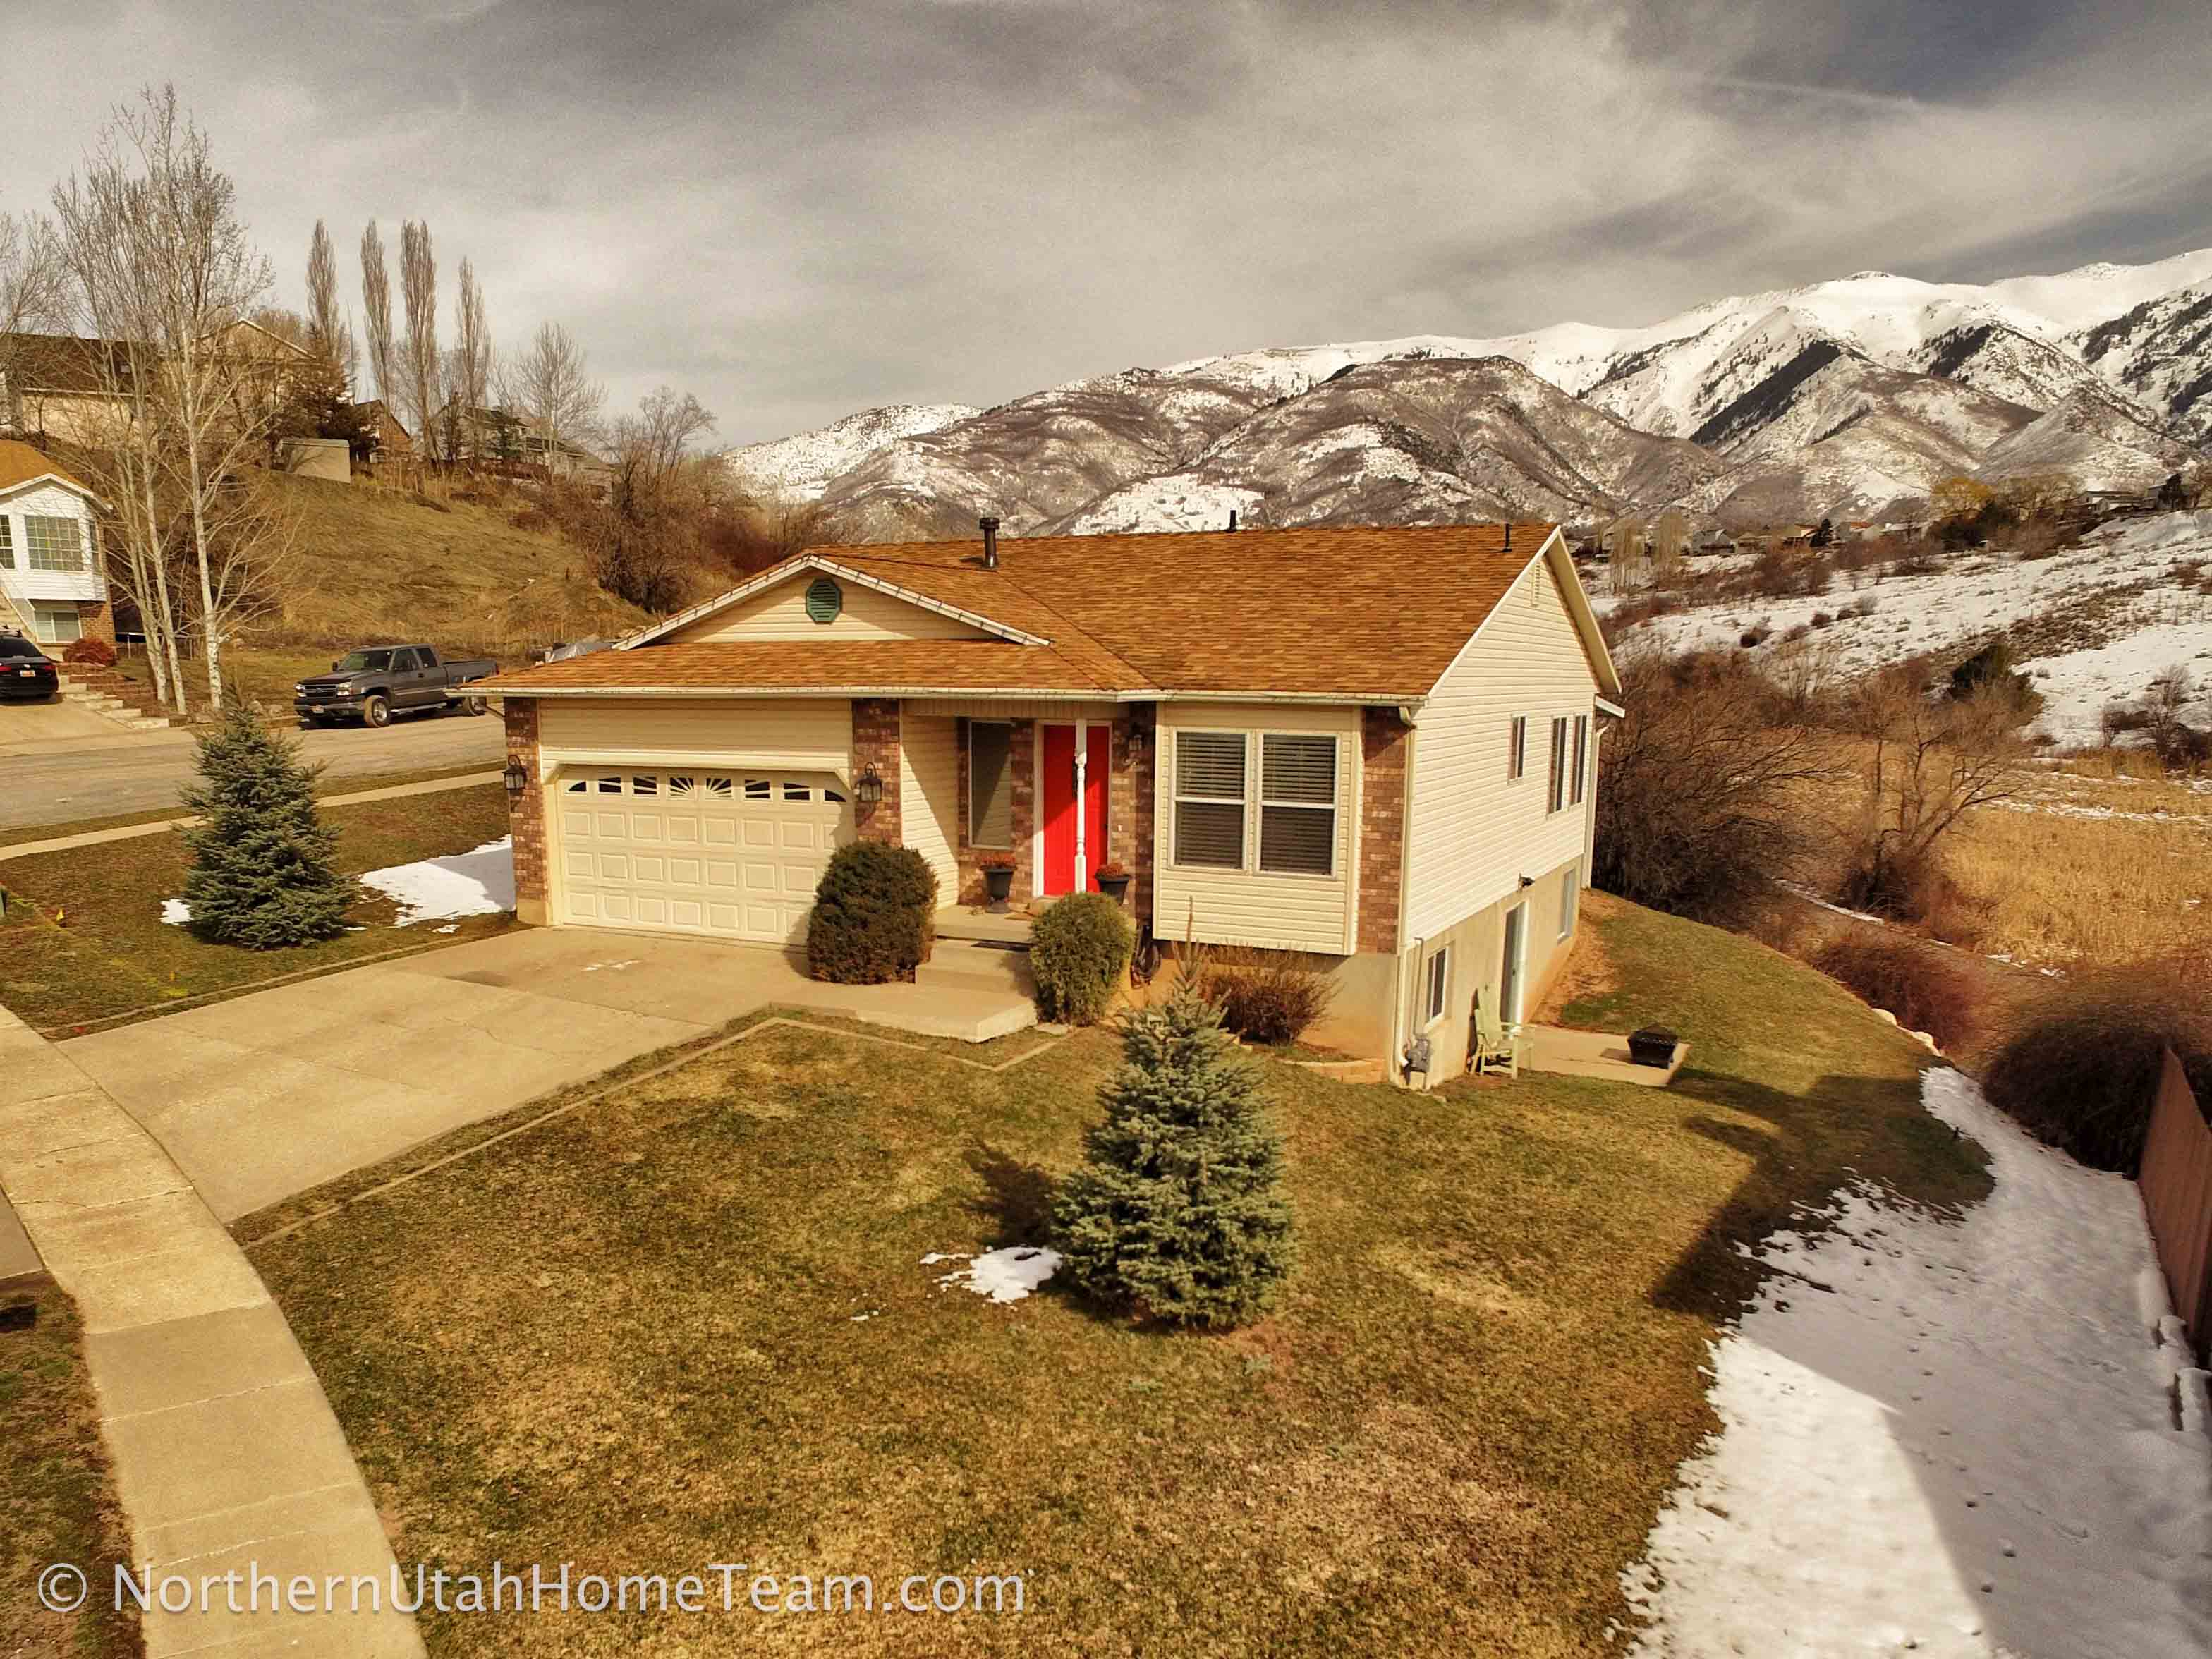 3 bed 3 bath layton ut rambler home for sale big maste for Rambler house plans utah